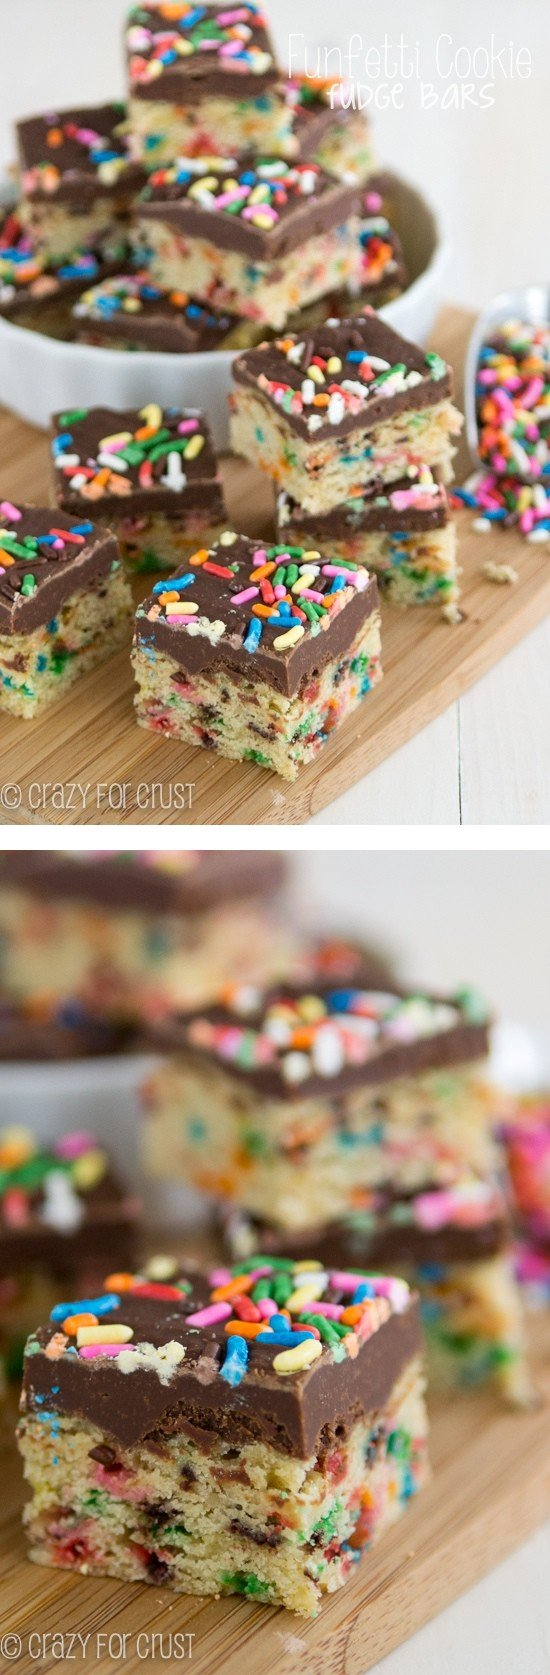 Funfetti Cookie Fudge Bars with rainbow sprinkles stacked on a wood cutting board